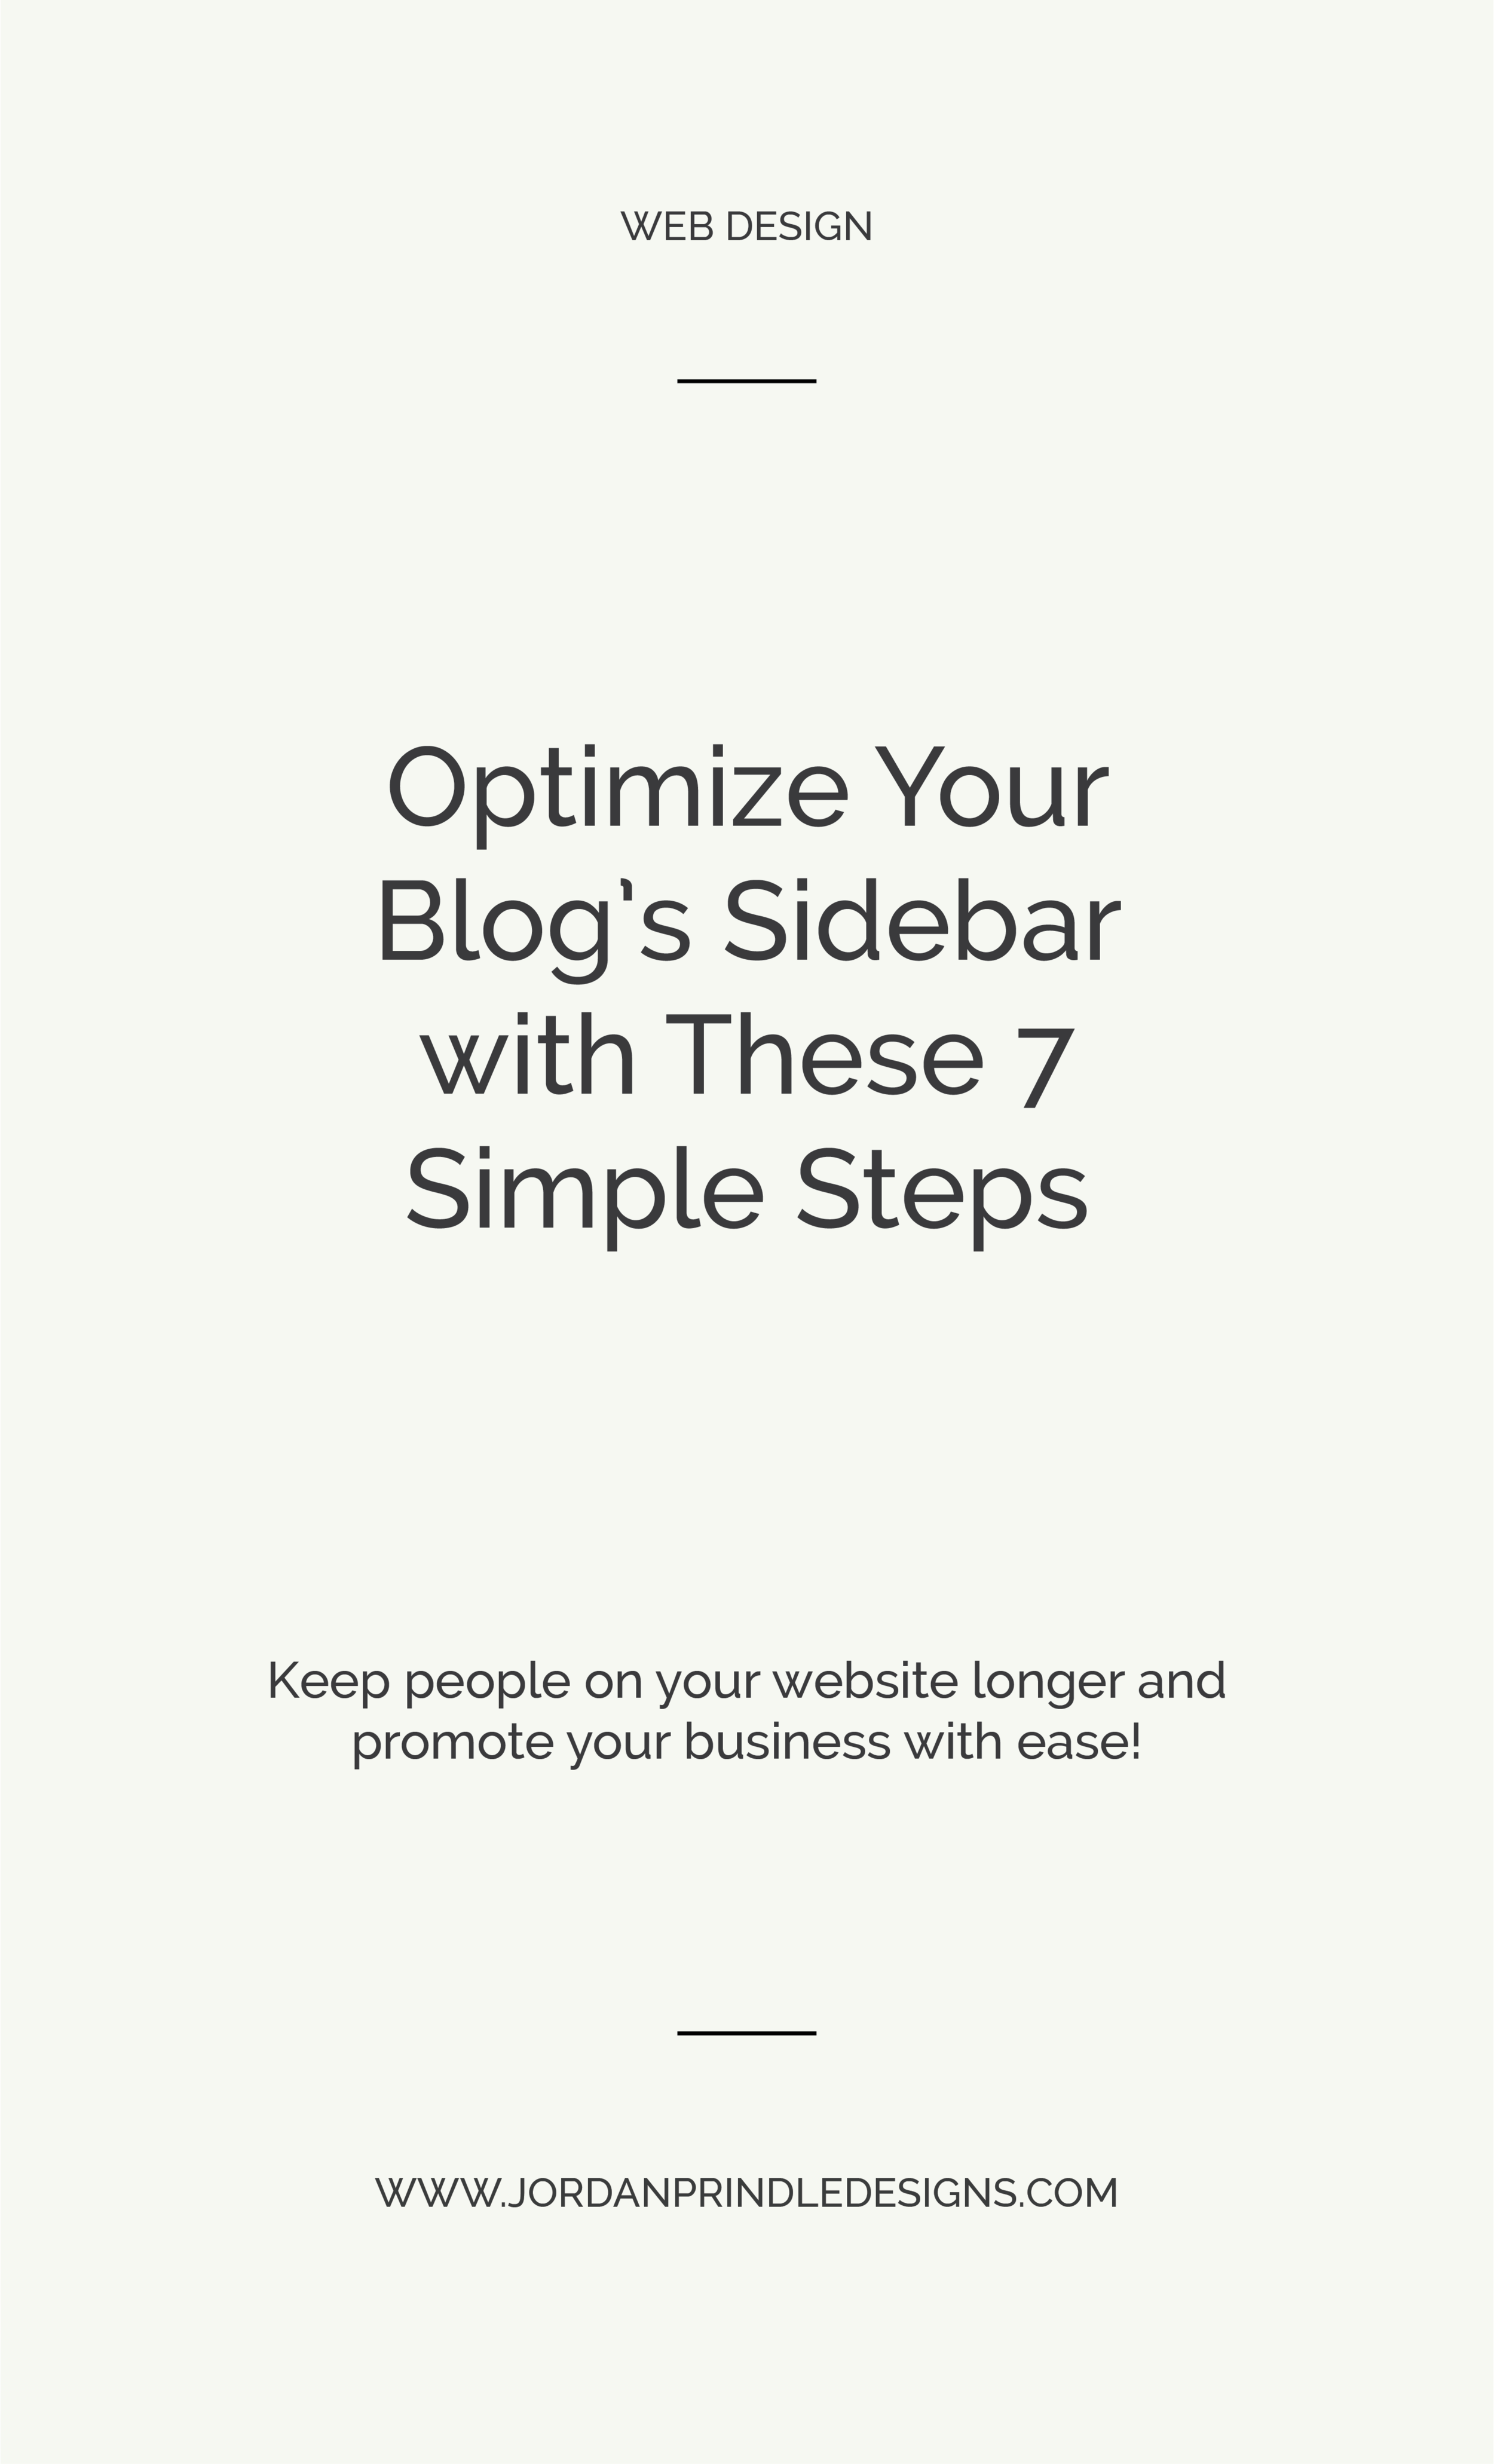 Optimize Your Blog's Sidebar With These 7 Simple Tips | As a creative entrepreneur you know the importance of blogging. But, do you know how to design your Squarespace's blog sidebar so that it actually converts? Read my seven tips at www.jordanprindledesigns.com #squarespacedesign #blogger #creativeentrepreneur